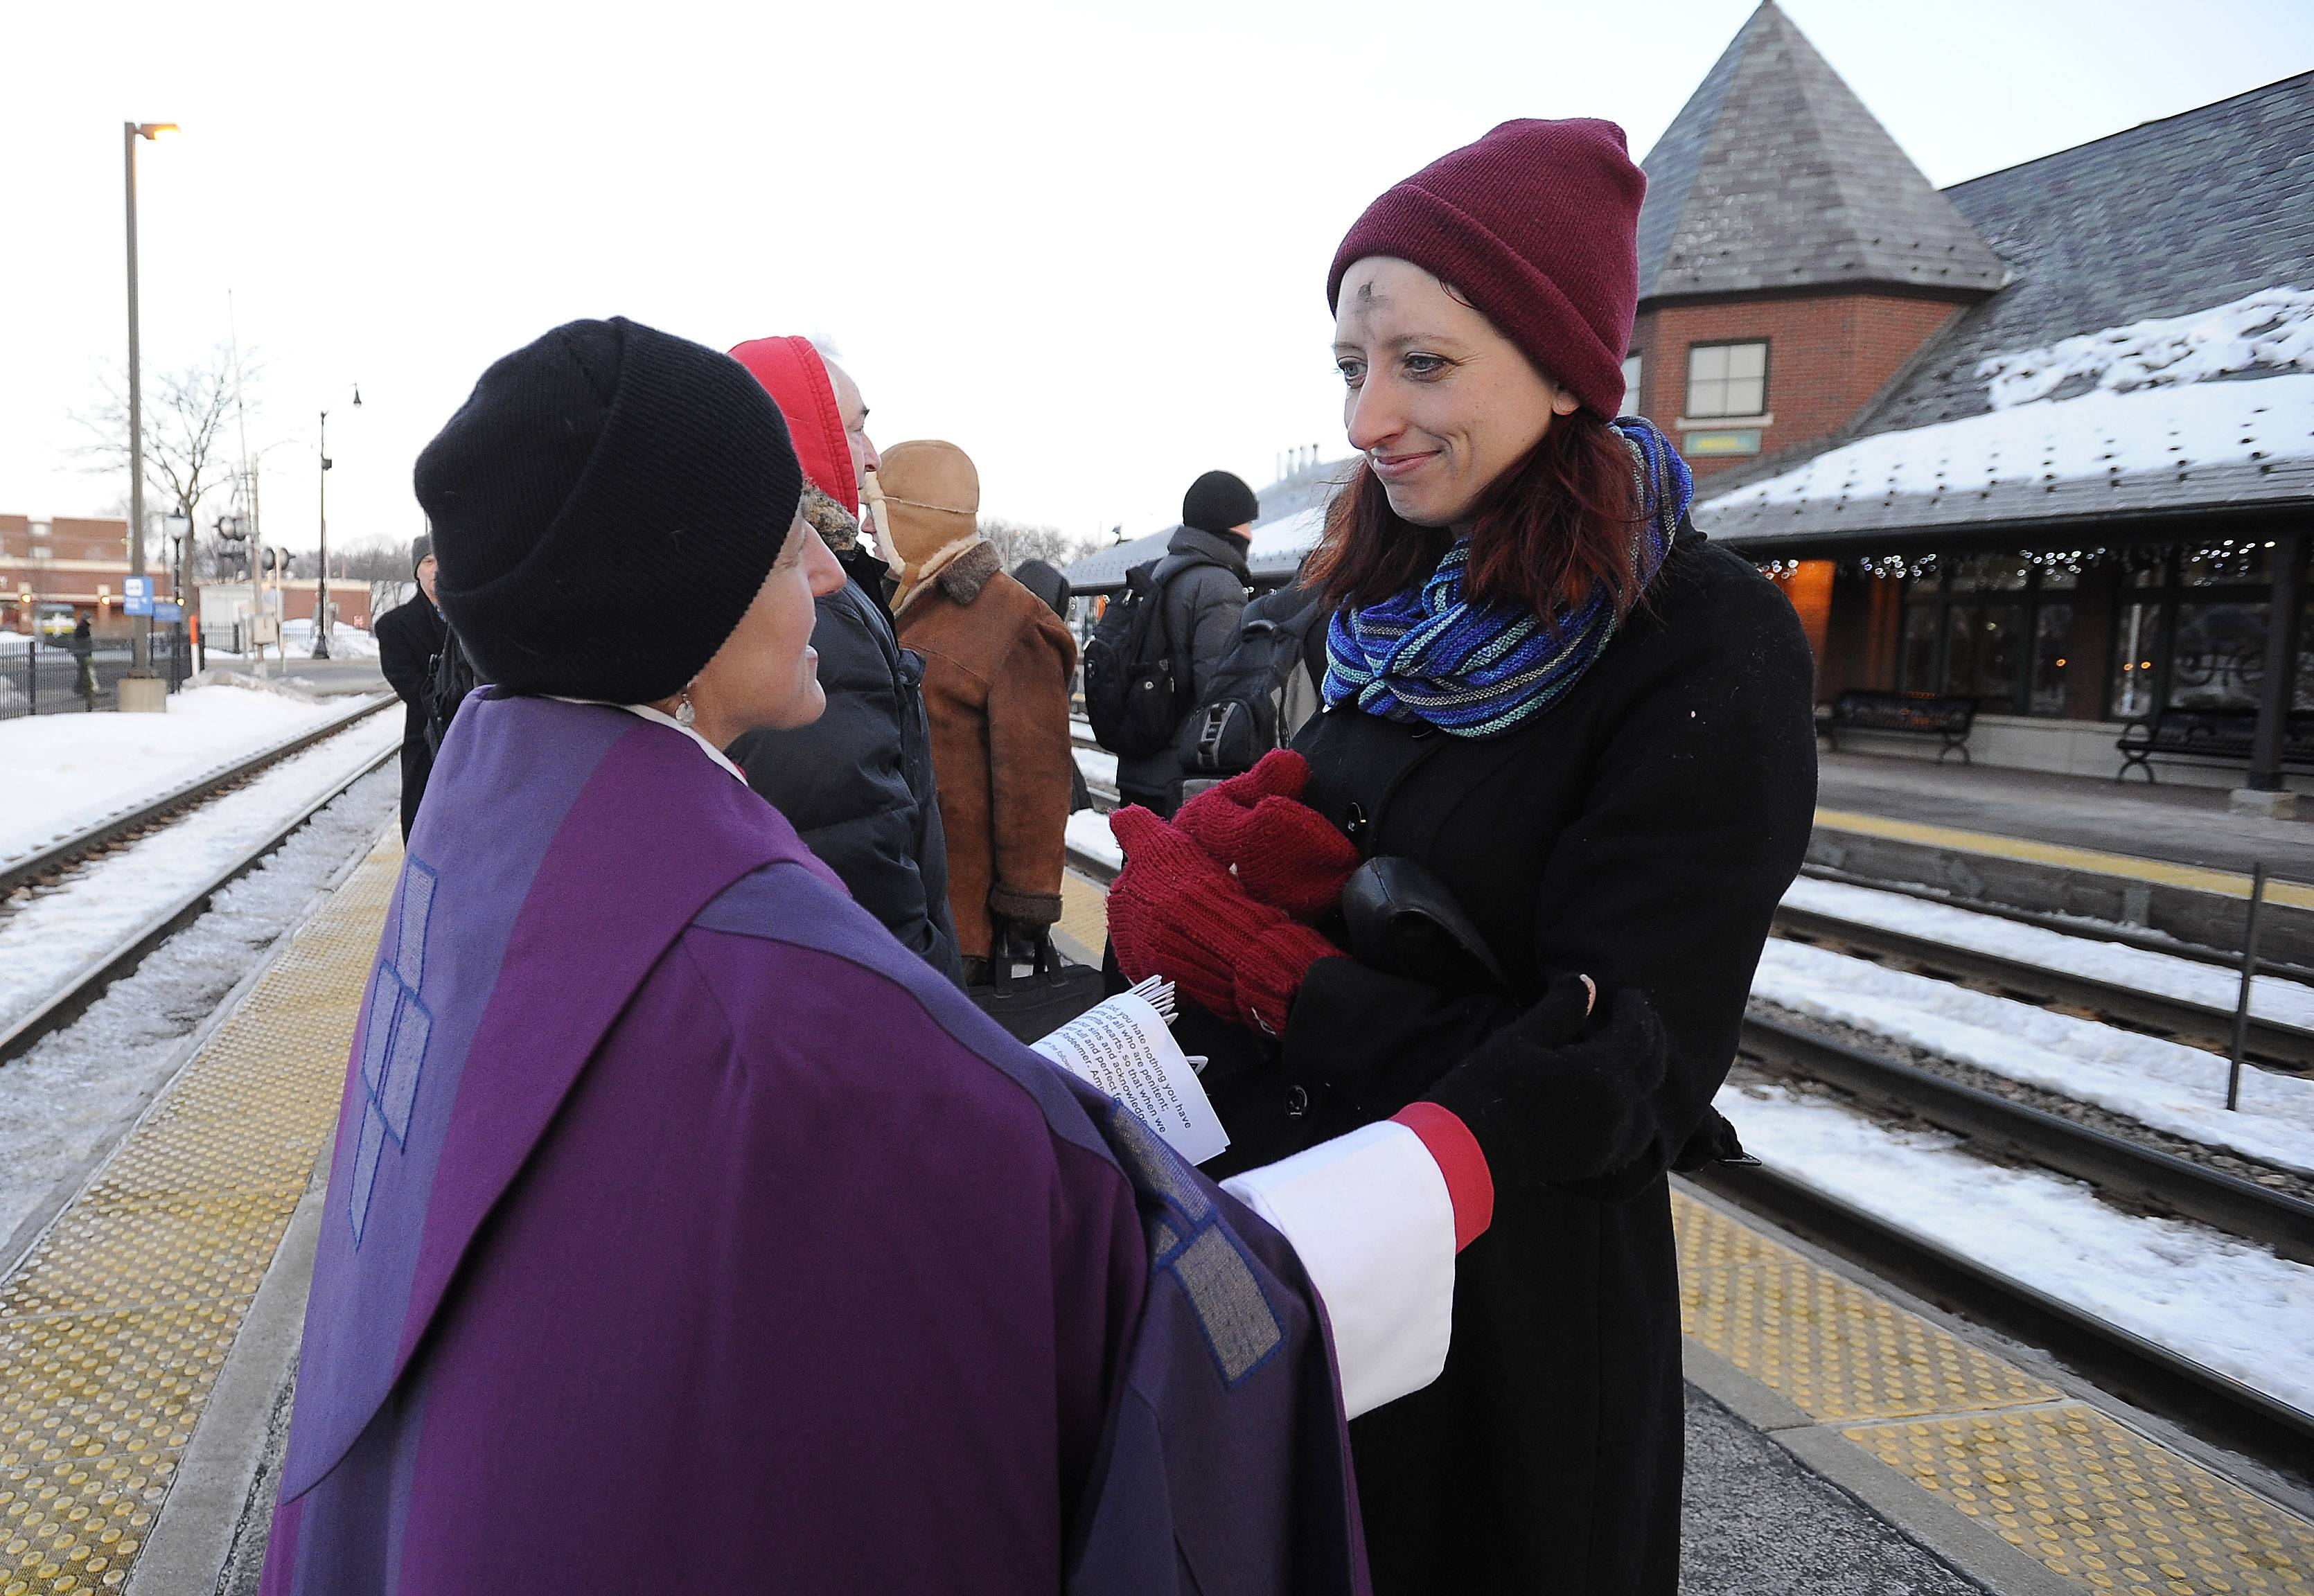 The Rev. Elizabeth Butler Jameson of St. Simon's Episcopal Church in Arlington Heights gives ashes to commuter Bridget Jeffrief of Palatine at the Arlington Heights train station on Ash Wednesday.